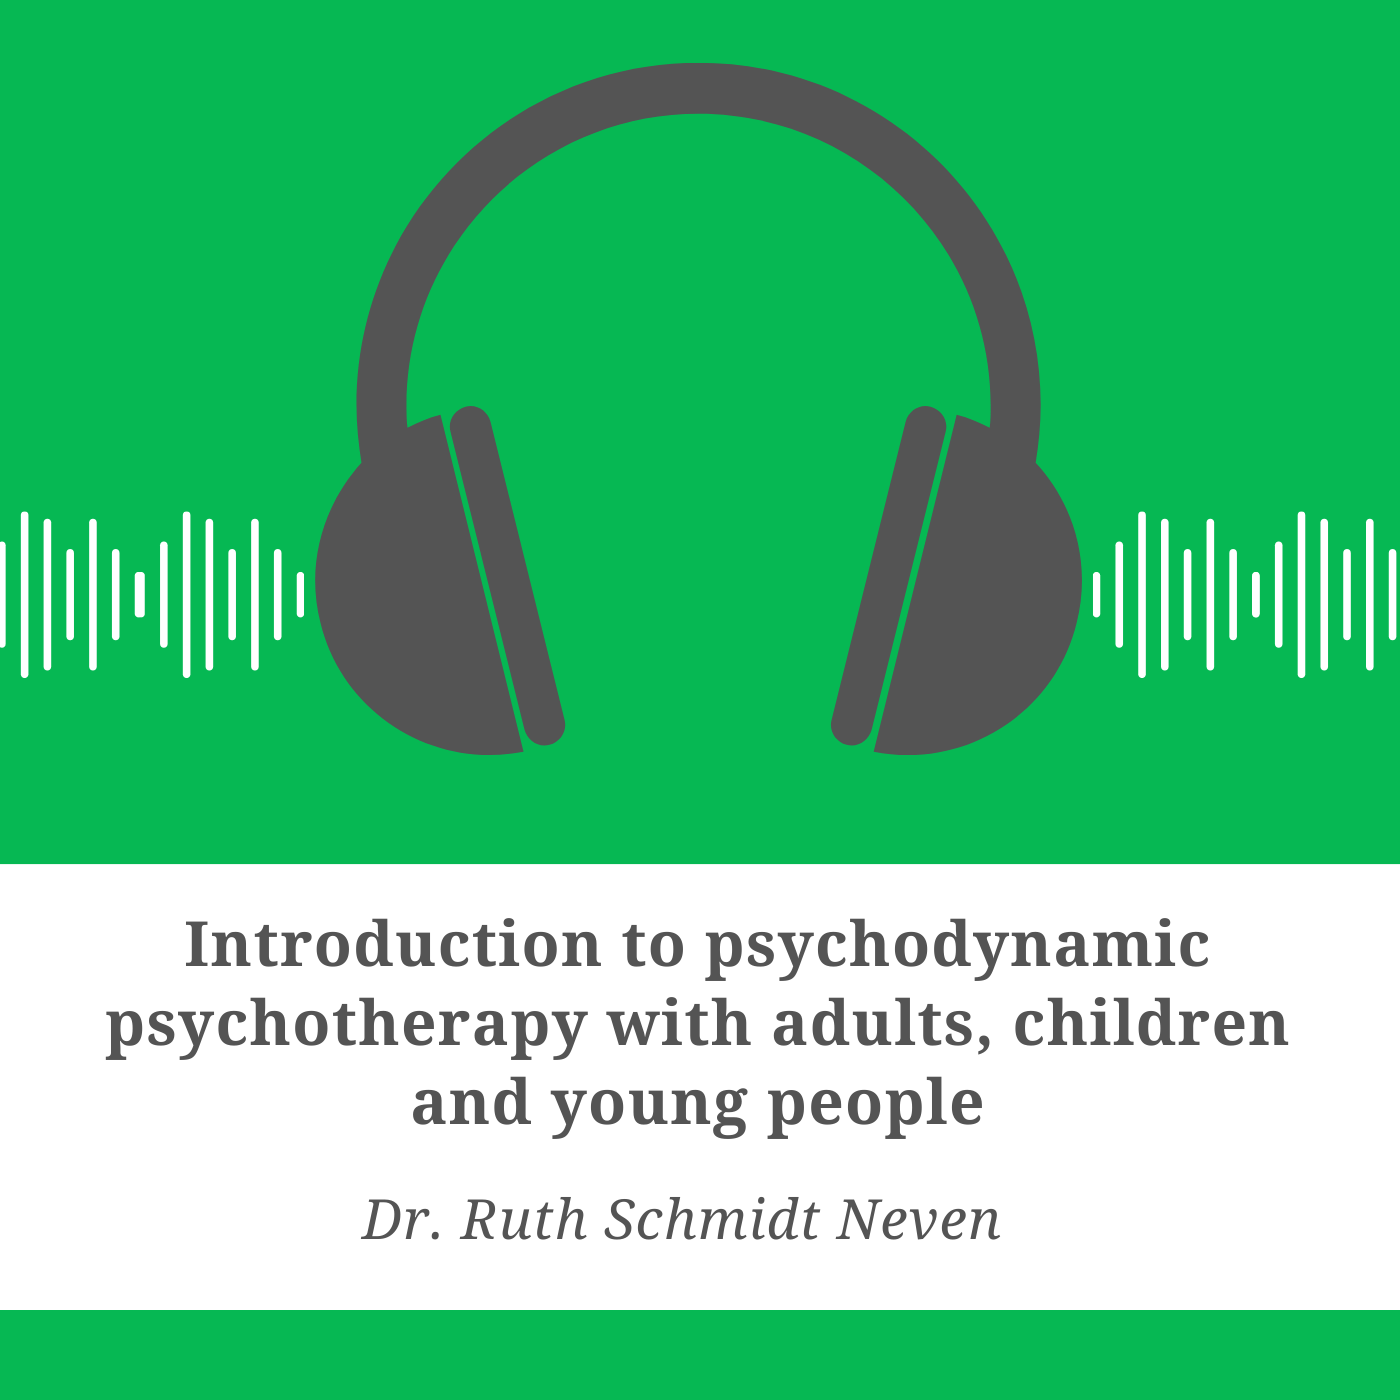 Introduction to psychodynamic psychotherapy with adults, children, and young people